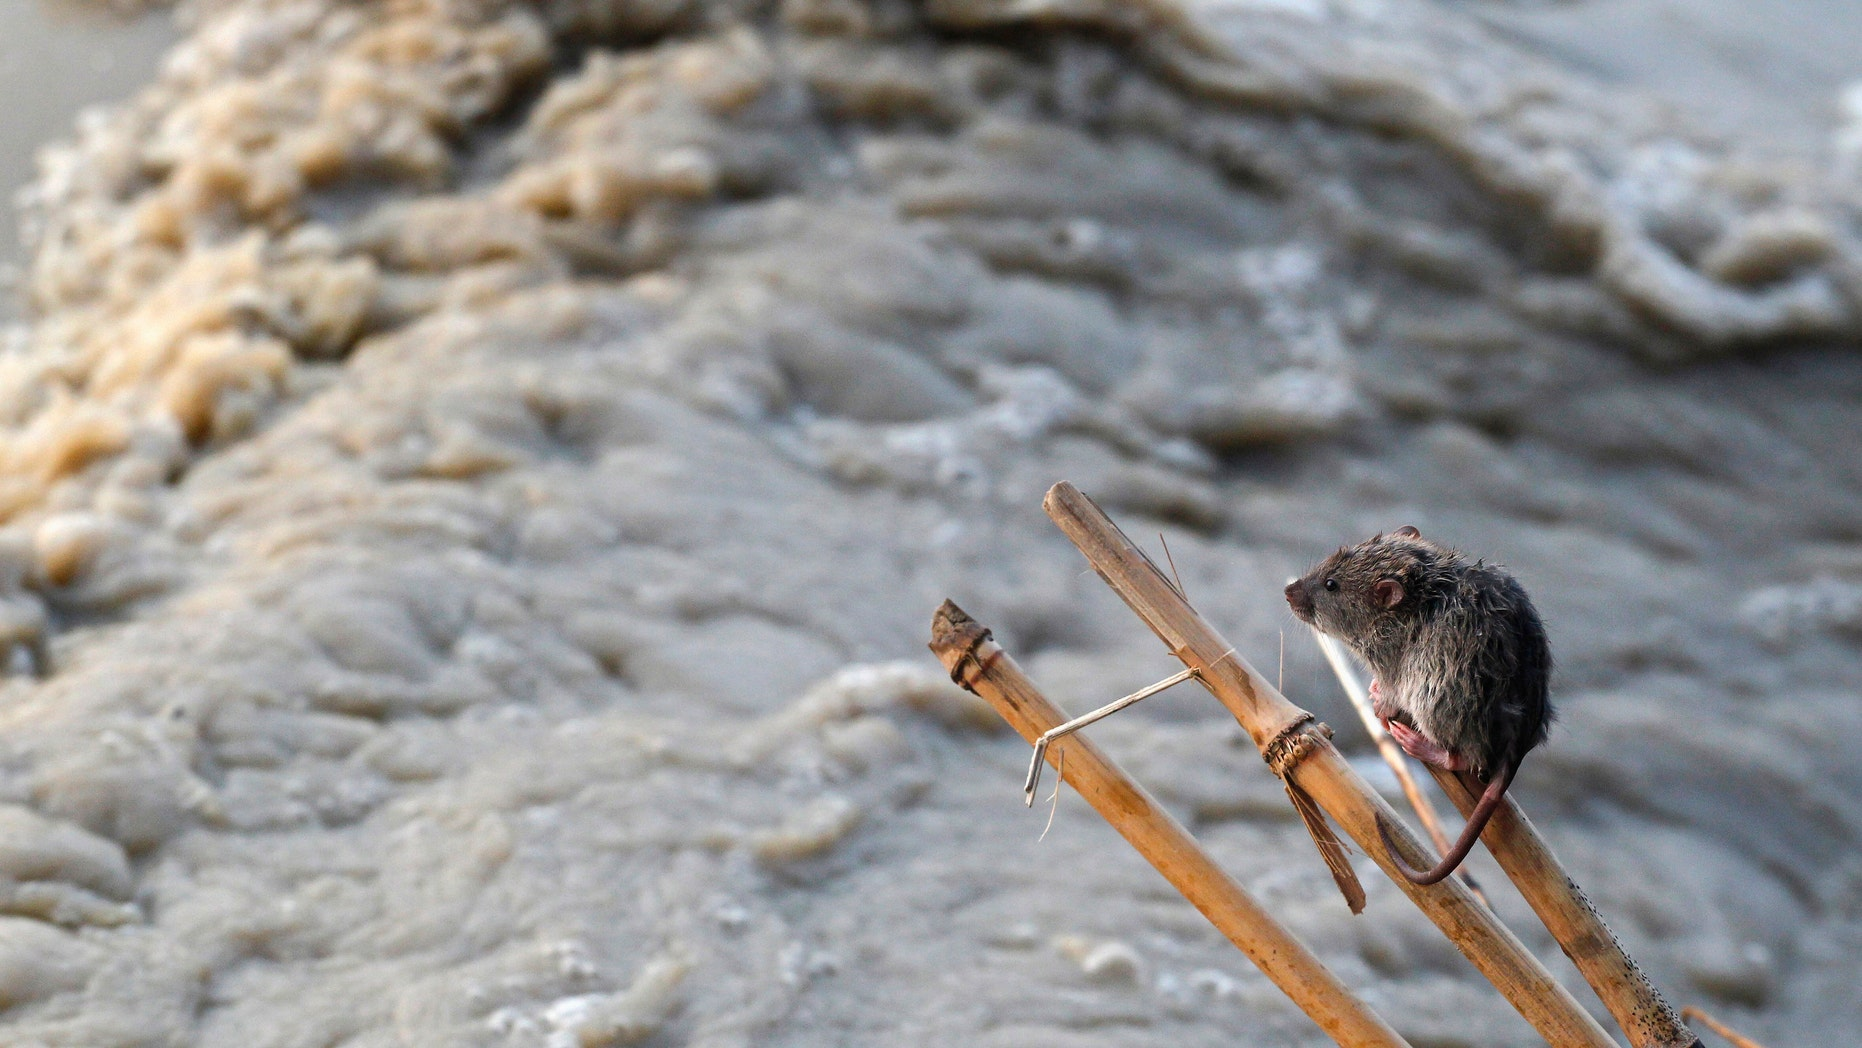 File photo - A stranded mouse rests on a stick next to the rising waters of river Yamuna in New Delhi June 19, 2013. (REUTERS/Anindito Mukherjee)